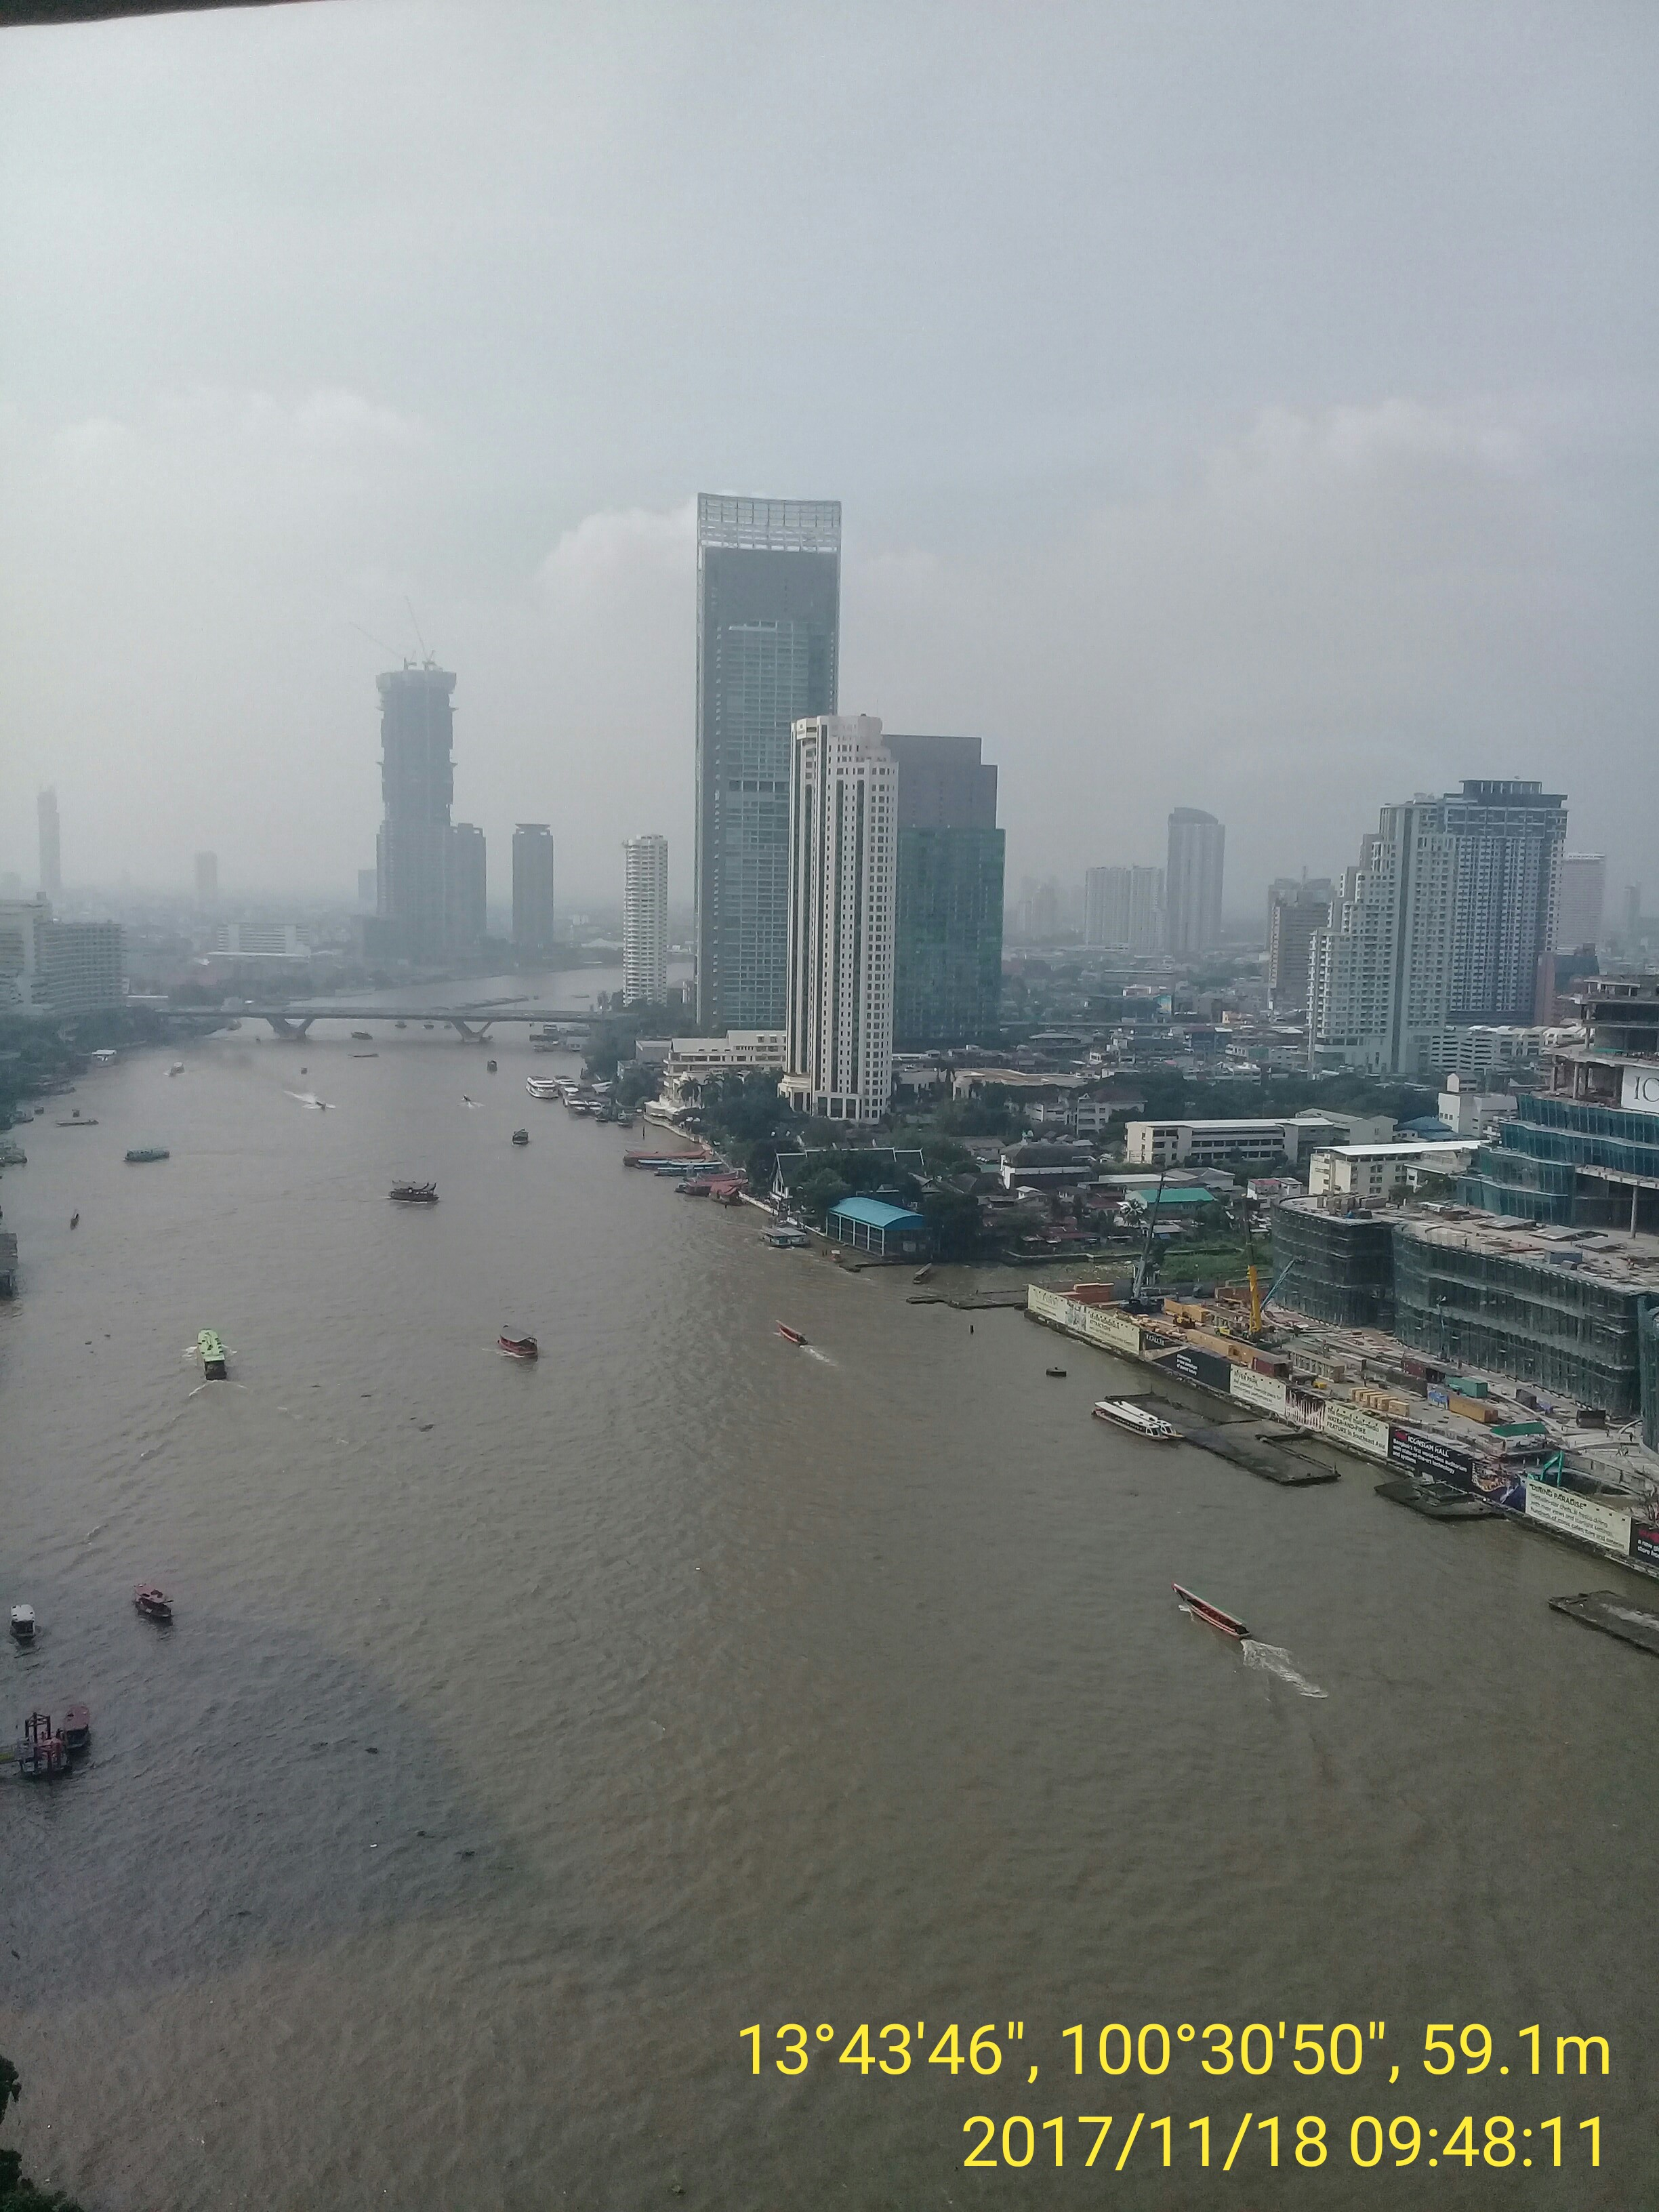 The Chao Phraya River in Bangkok, looking north from the top floor of Sheraton Grande Hotel. Photo taken by Mark Joseph Jochim on November 18, 2017.